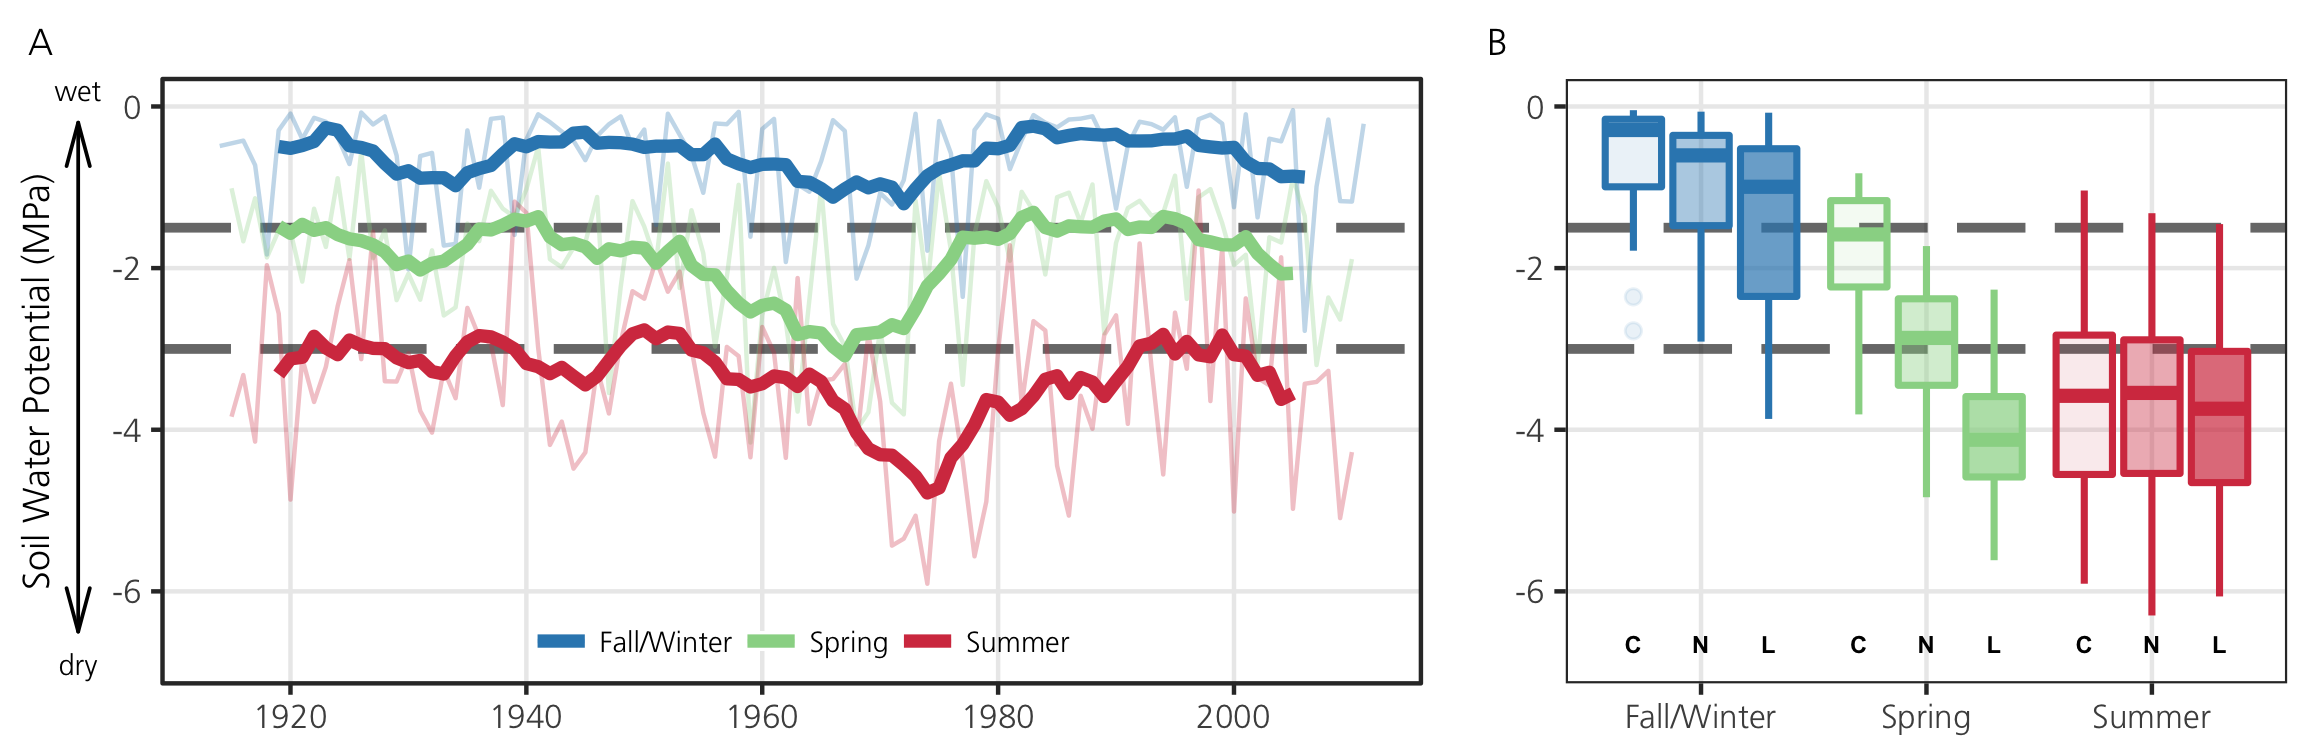 Two part graph. Left: Line graph of soil water potential by season (1920 to 2000). Seasons are: Fall/Winter, Spring and Summer. Right: Box plot of soilwater potential by season for the current), near future and long-term future.